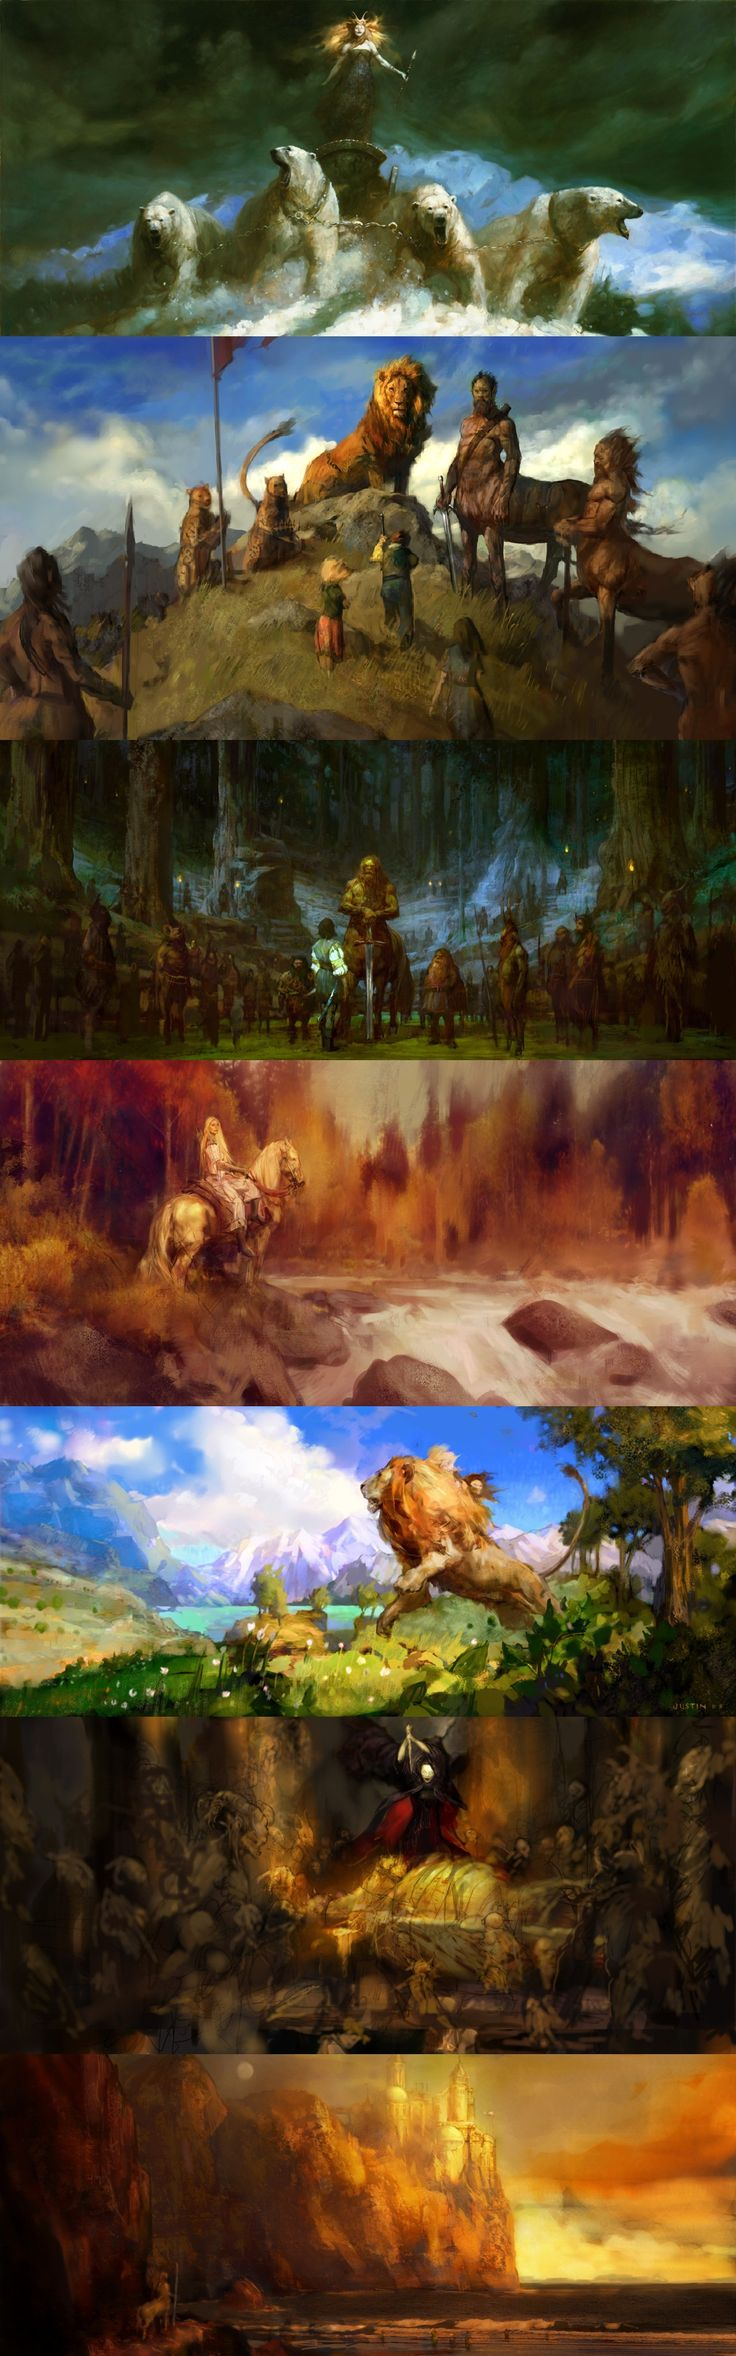 The Chronicles of Narnia concept art by Justin Sweet from knightofleo on Tumblr  #Narnia #FanArt #Aslan